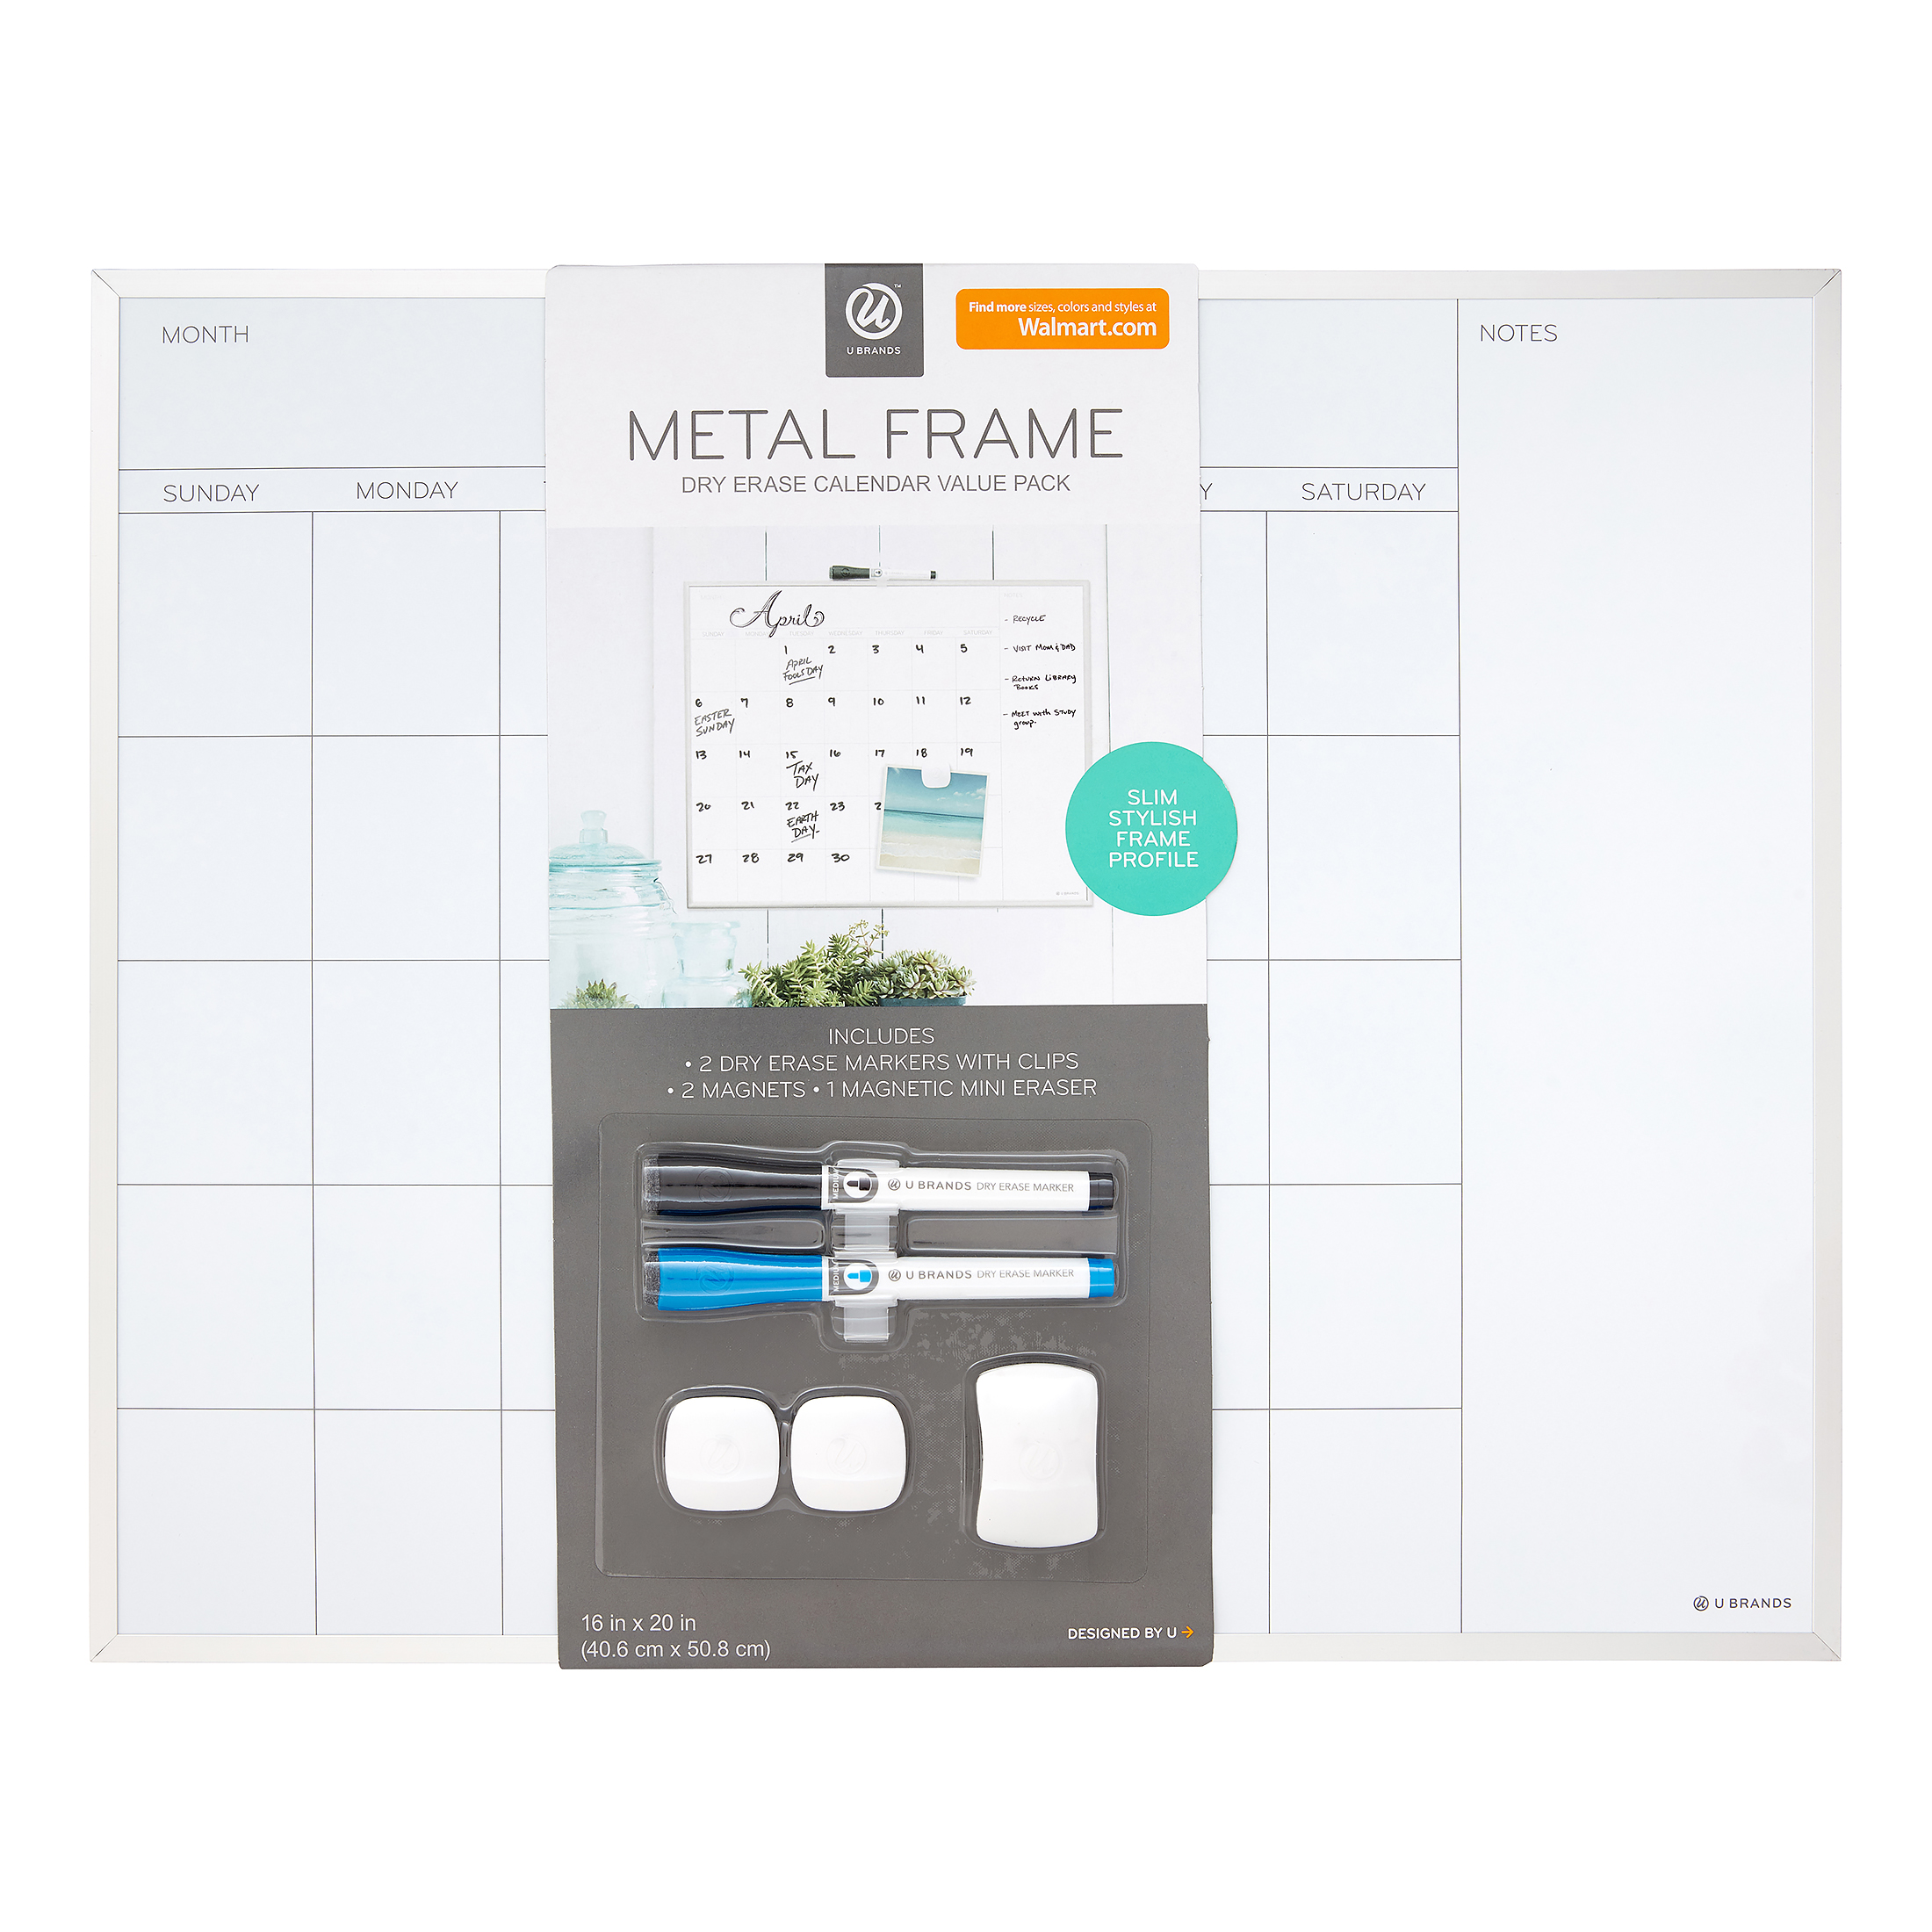 U Brands 16 x 20-inch Magnetic Dry-Erase Monthly Calendar Board